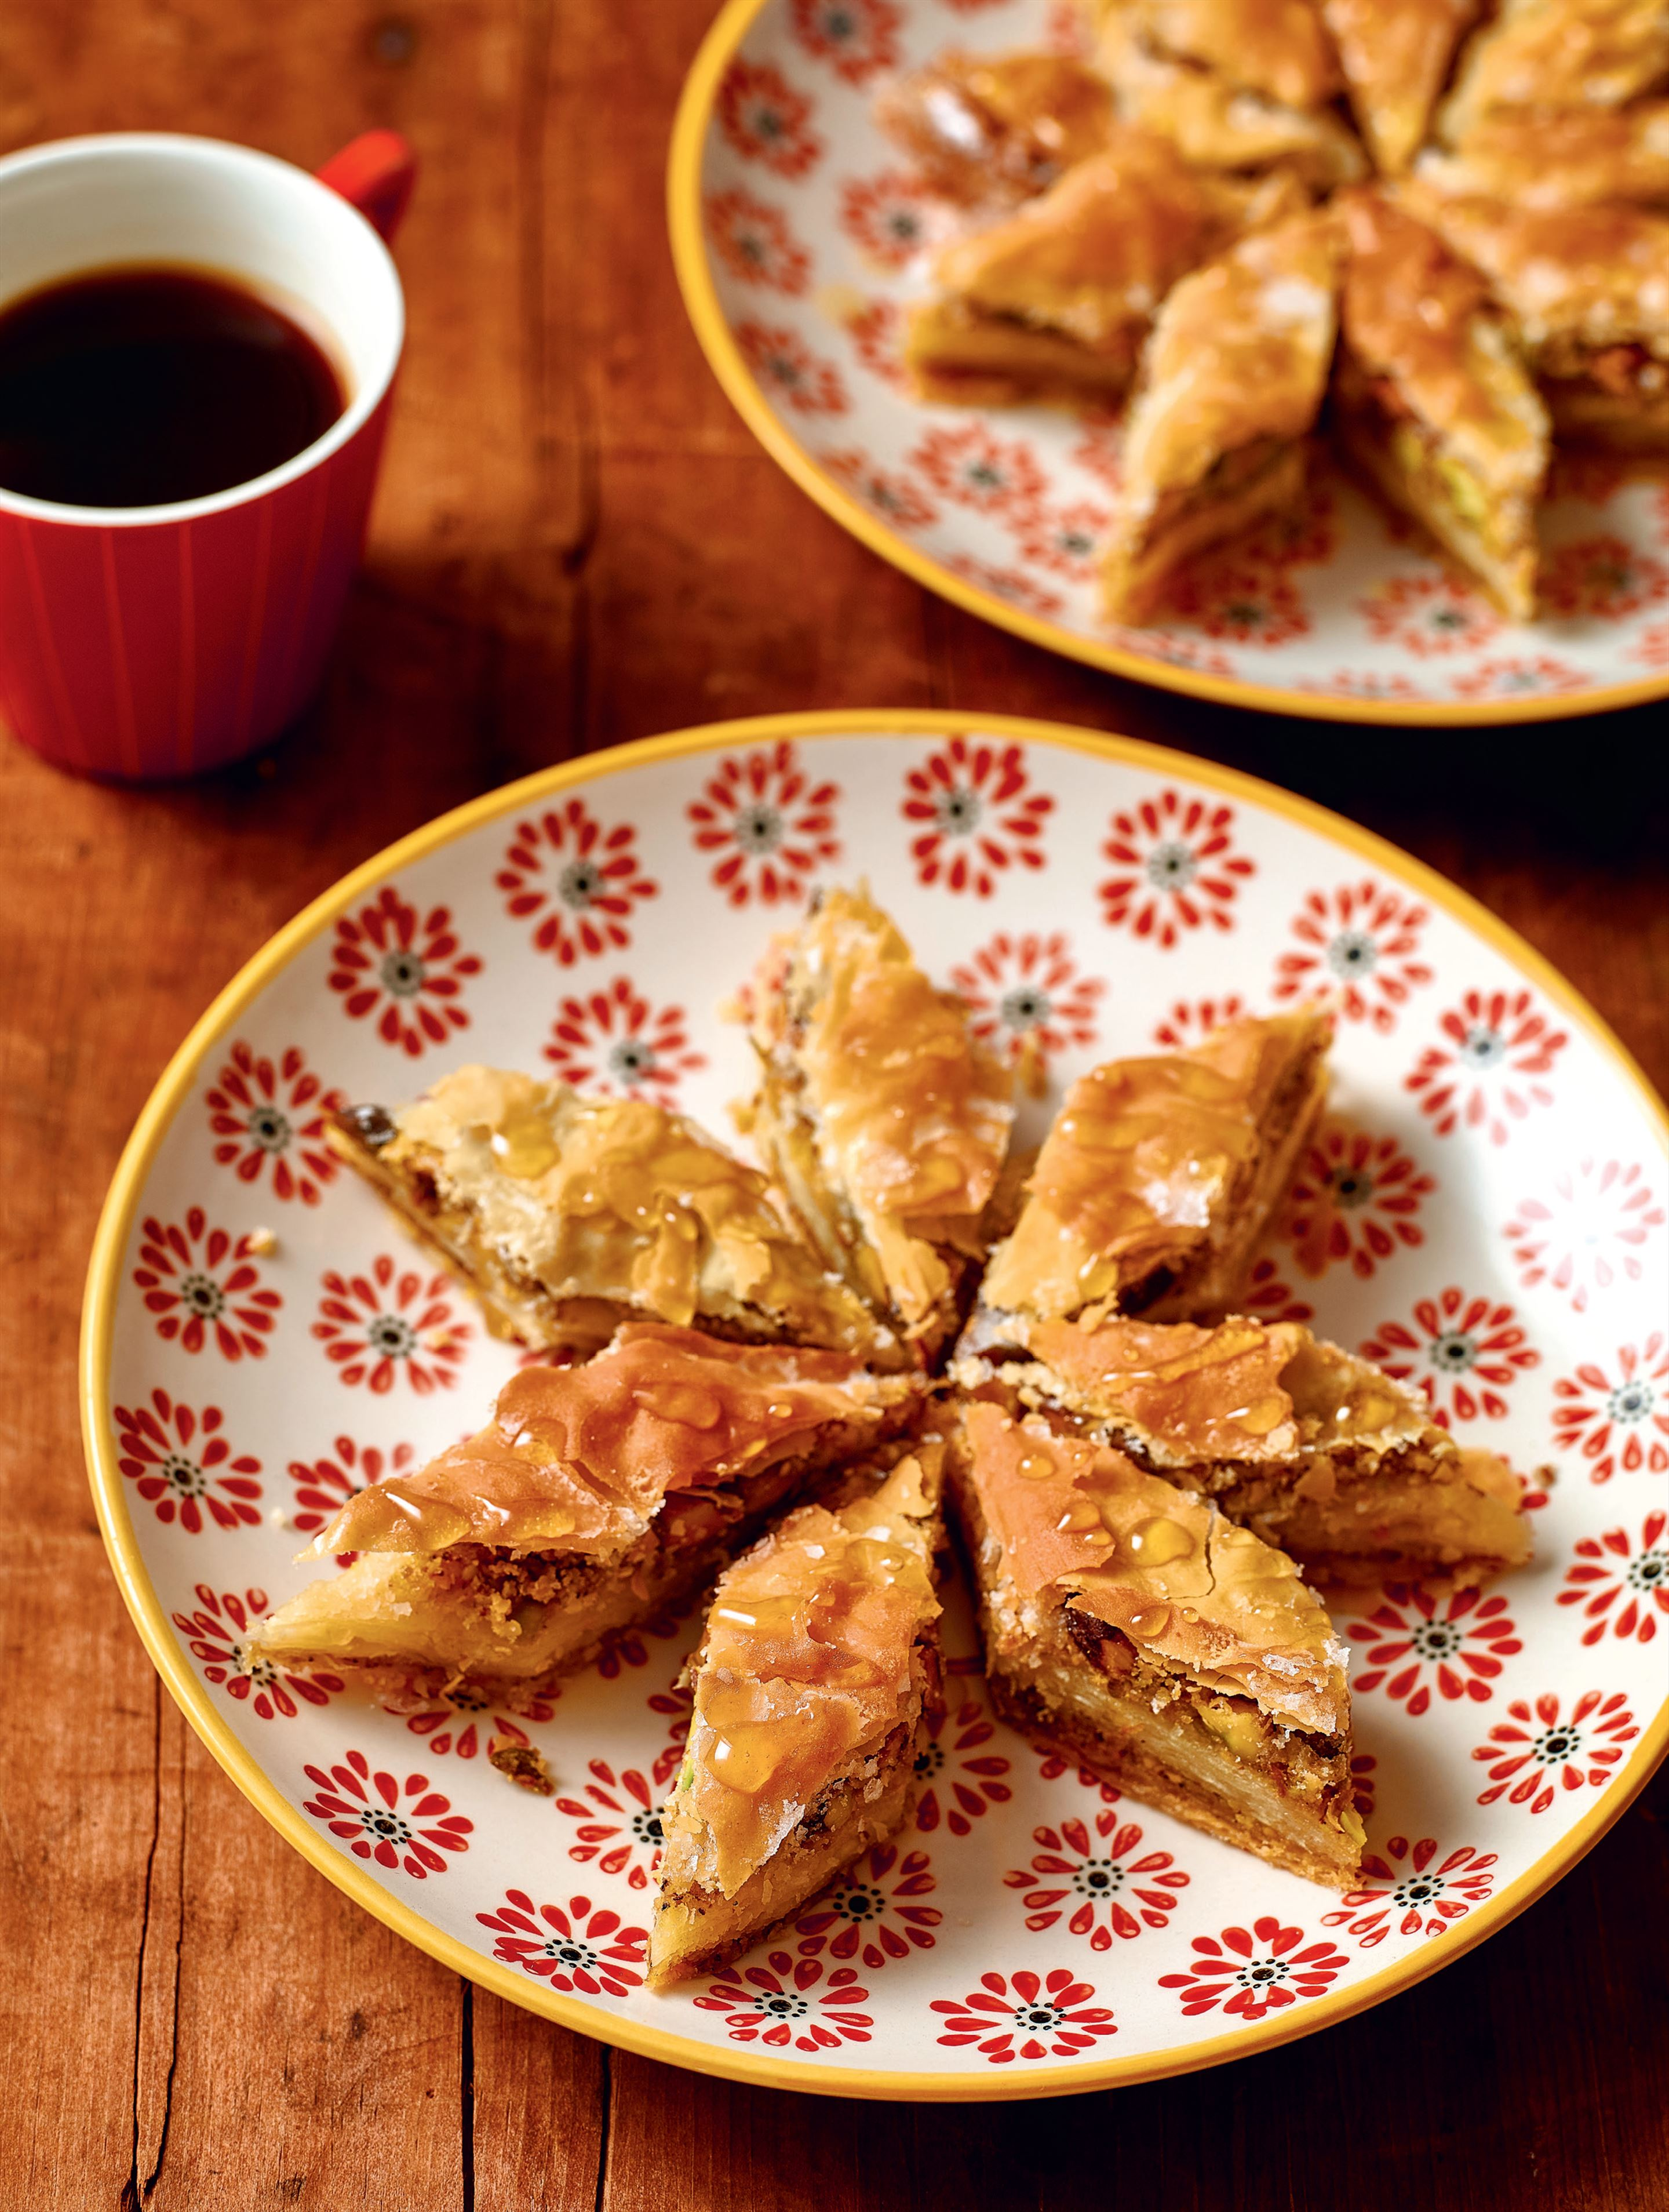 Rose and pistachio baklava